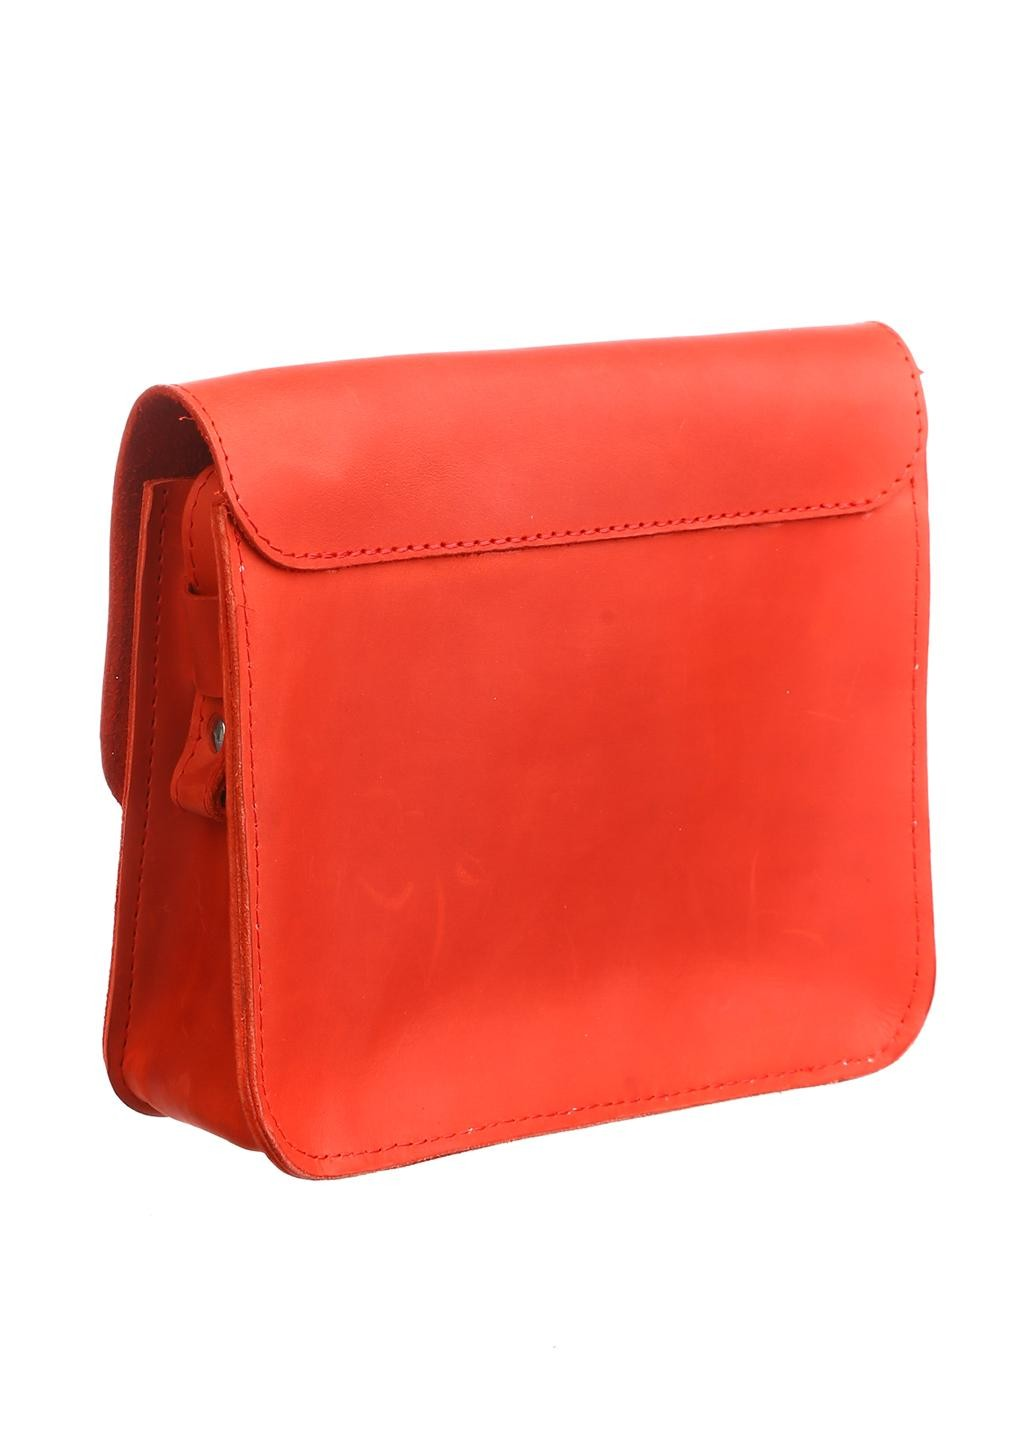 Orange leather purse - 2